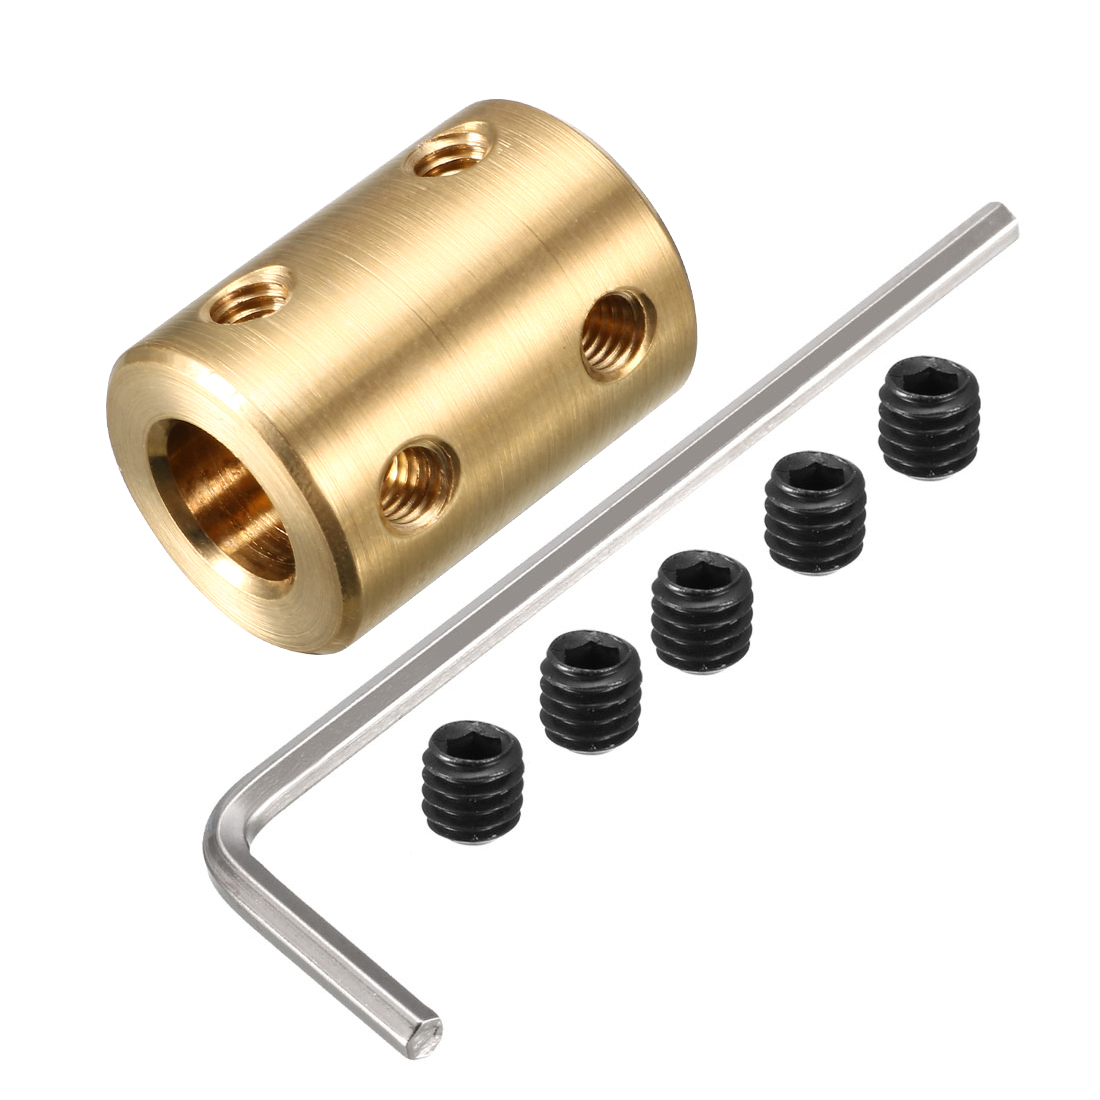 6mm to 8mm Copper DIY Motor Shaft Coupling Joint Connector for Electric Car Toy